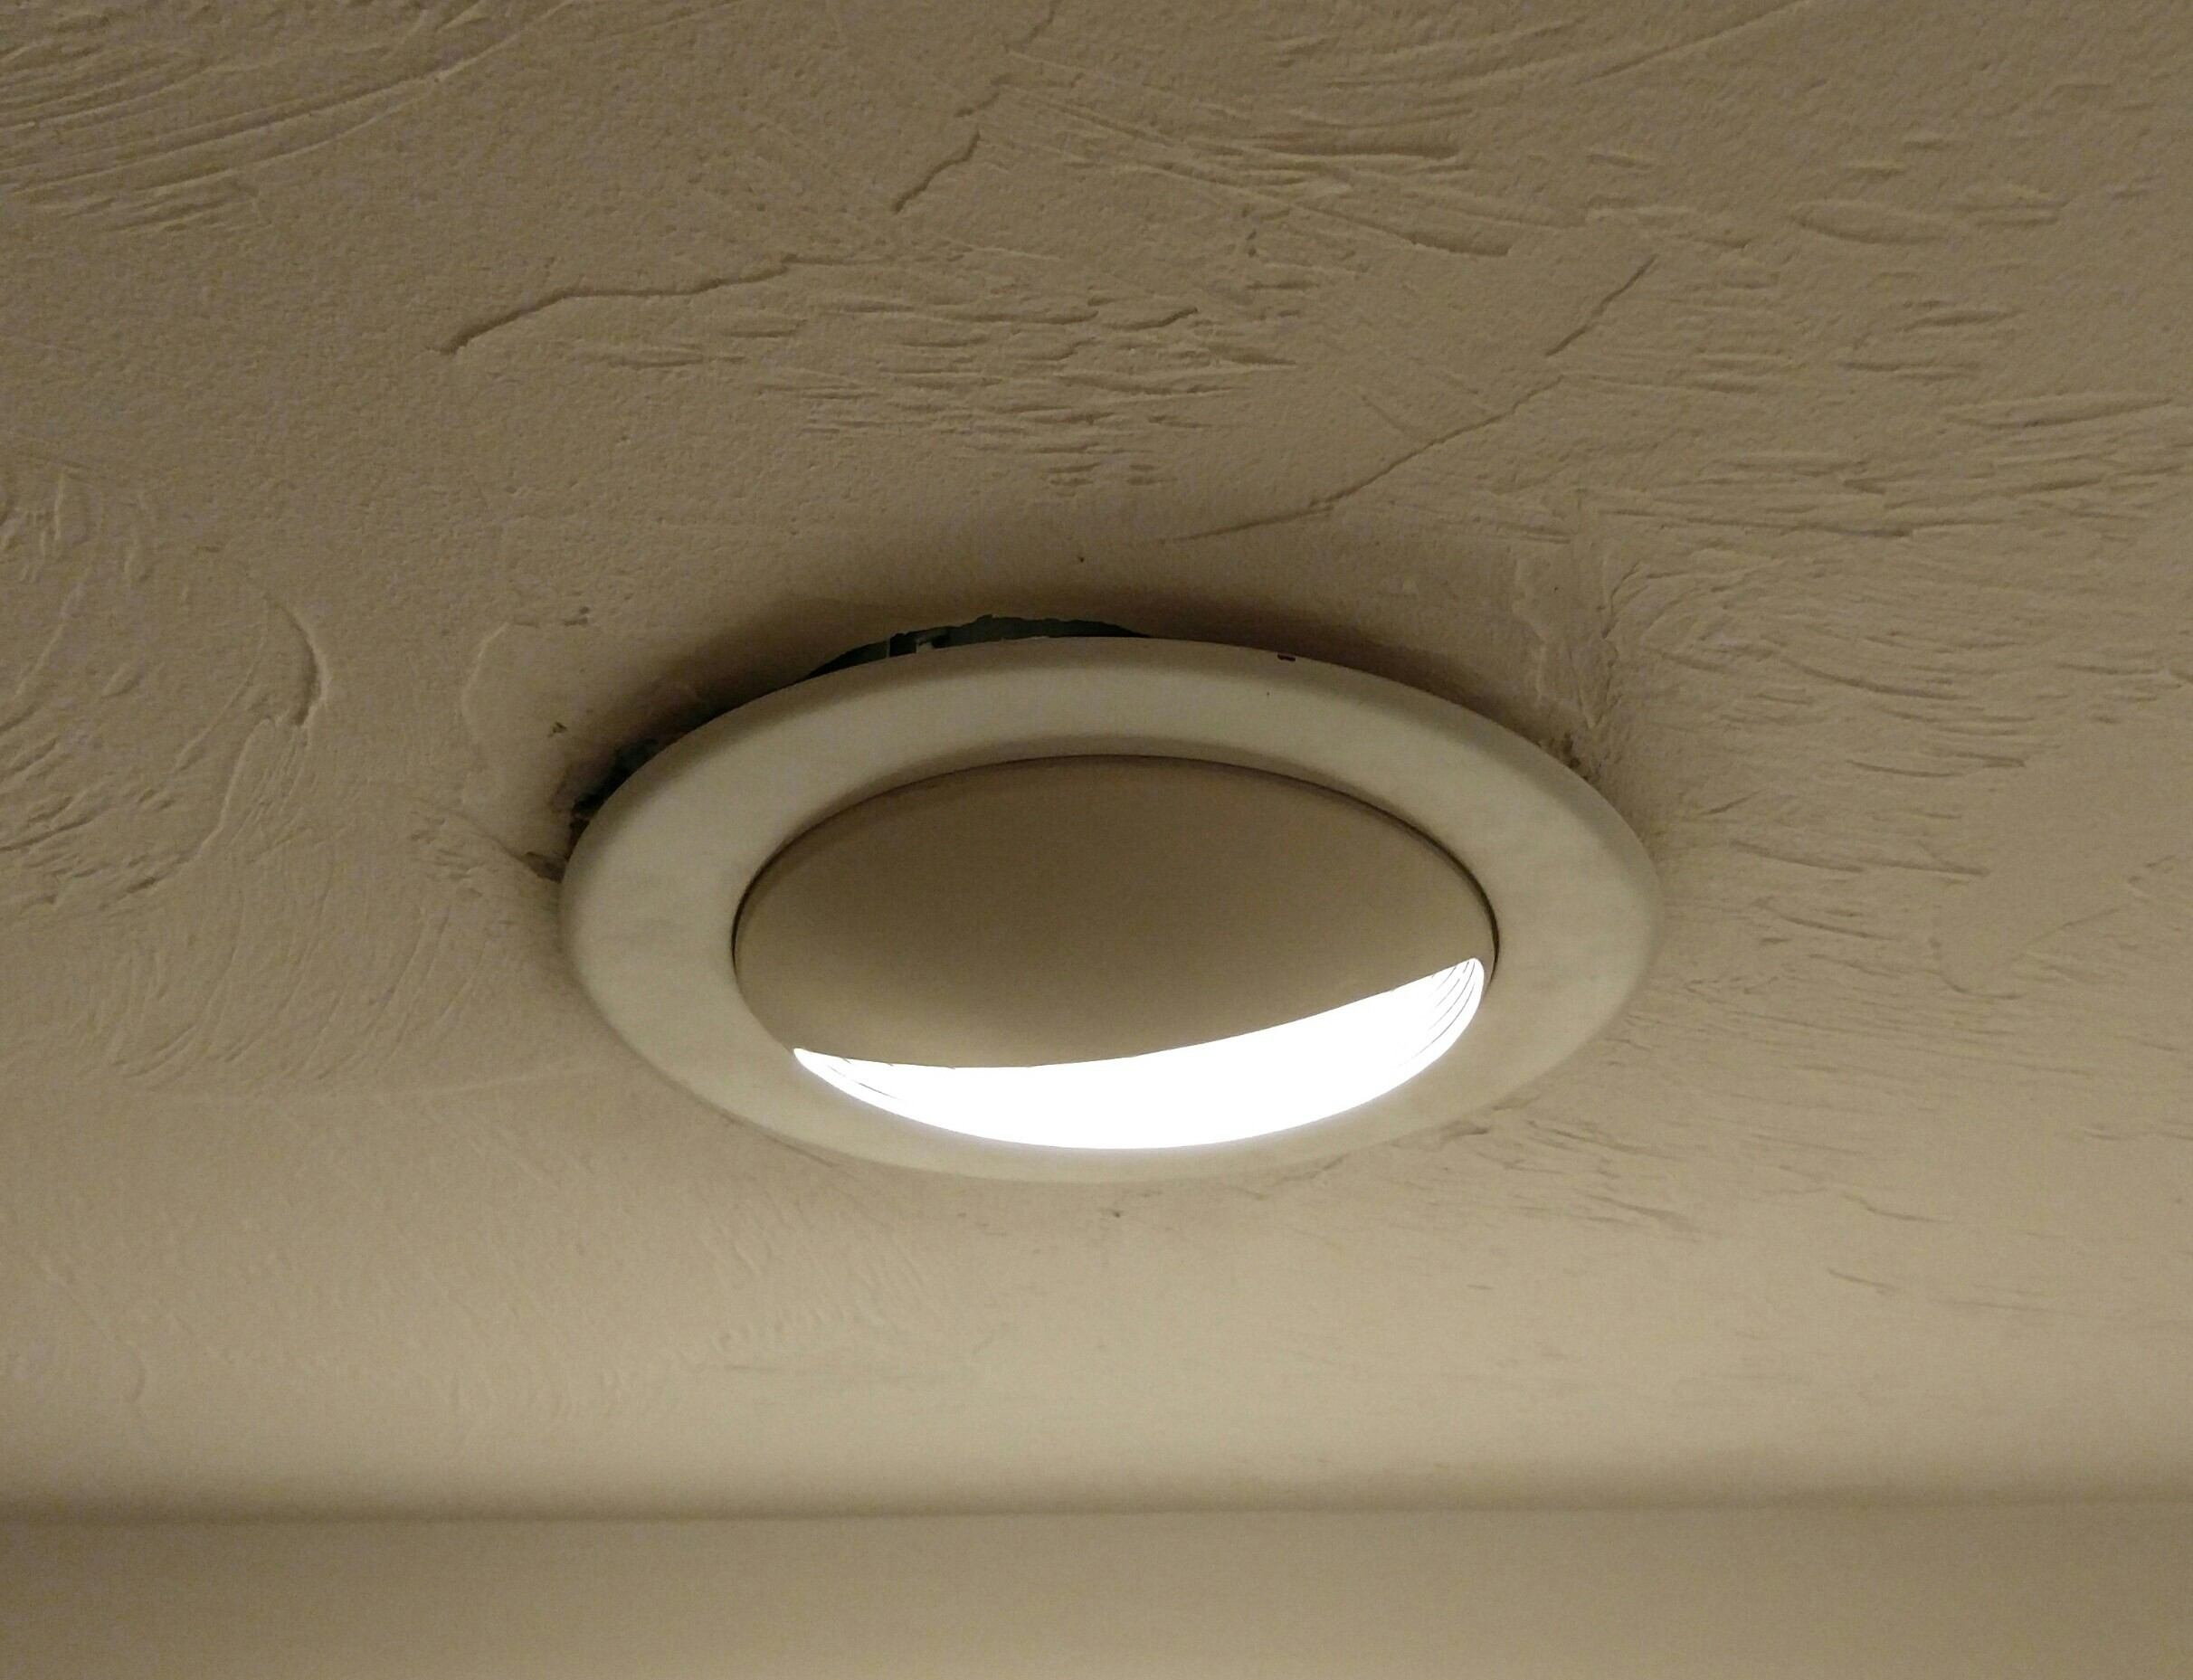 Breathtaking Enter Image Description Lighting Ceiling Lighting How To Remove Fix Recessed Light Trim Home Recessed Lighting Trim 4 Inch Recessed Lighting Trim Removal houzz-03 Recessed Lighting Trim